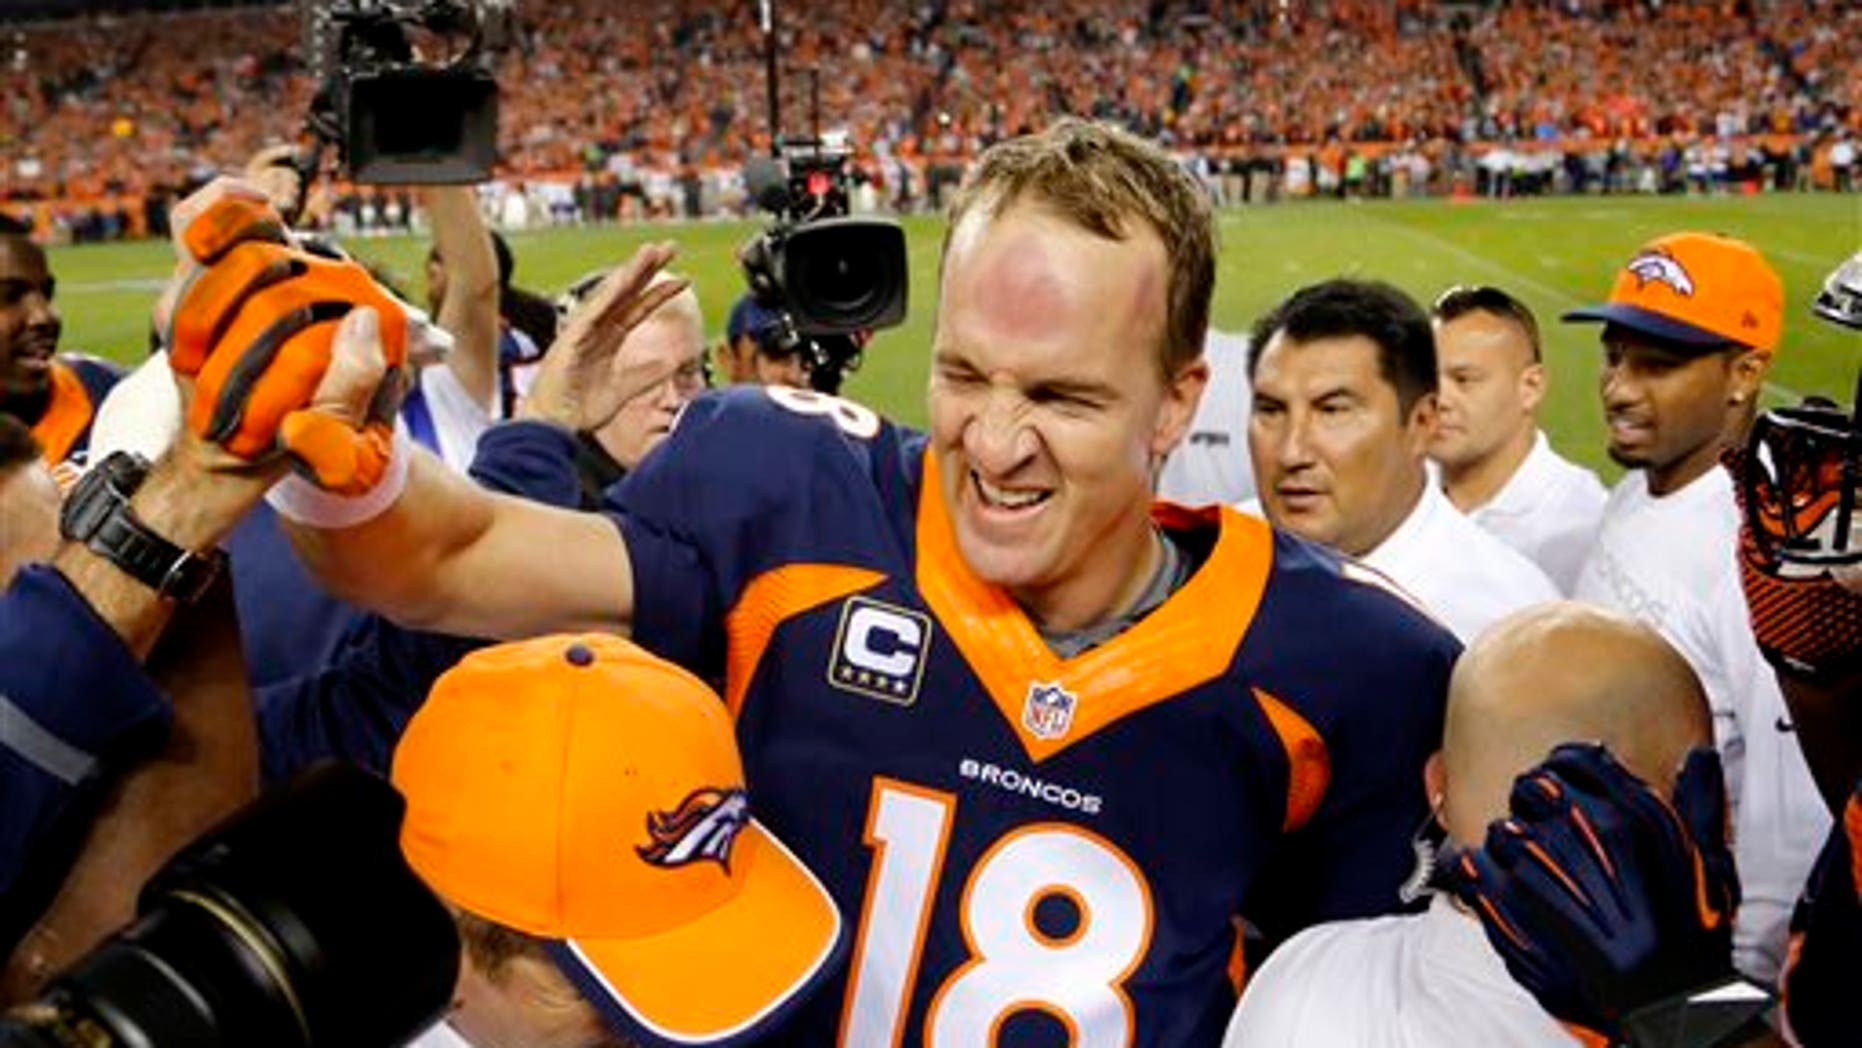 Oct. 19, 2014: Denver Broncos quarterback Peyton Manning (18) celebrates his 509th career touchdown pass with teammates during the first half of an NFL football game against the San Francisco 49ers.